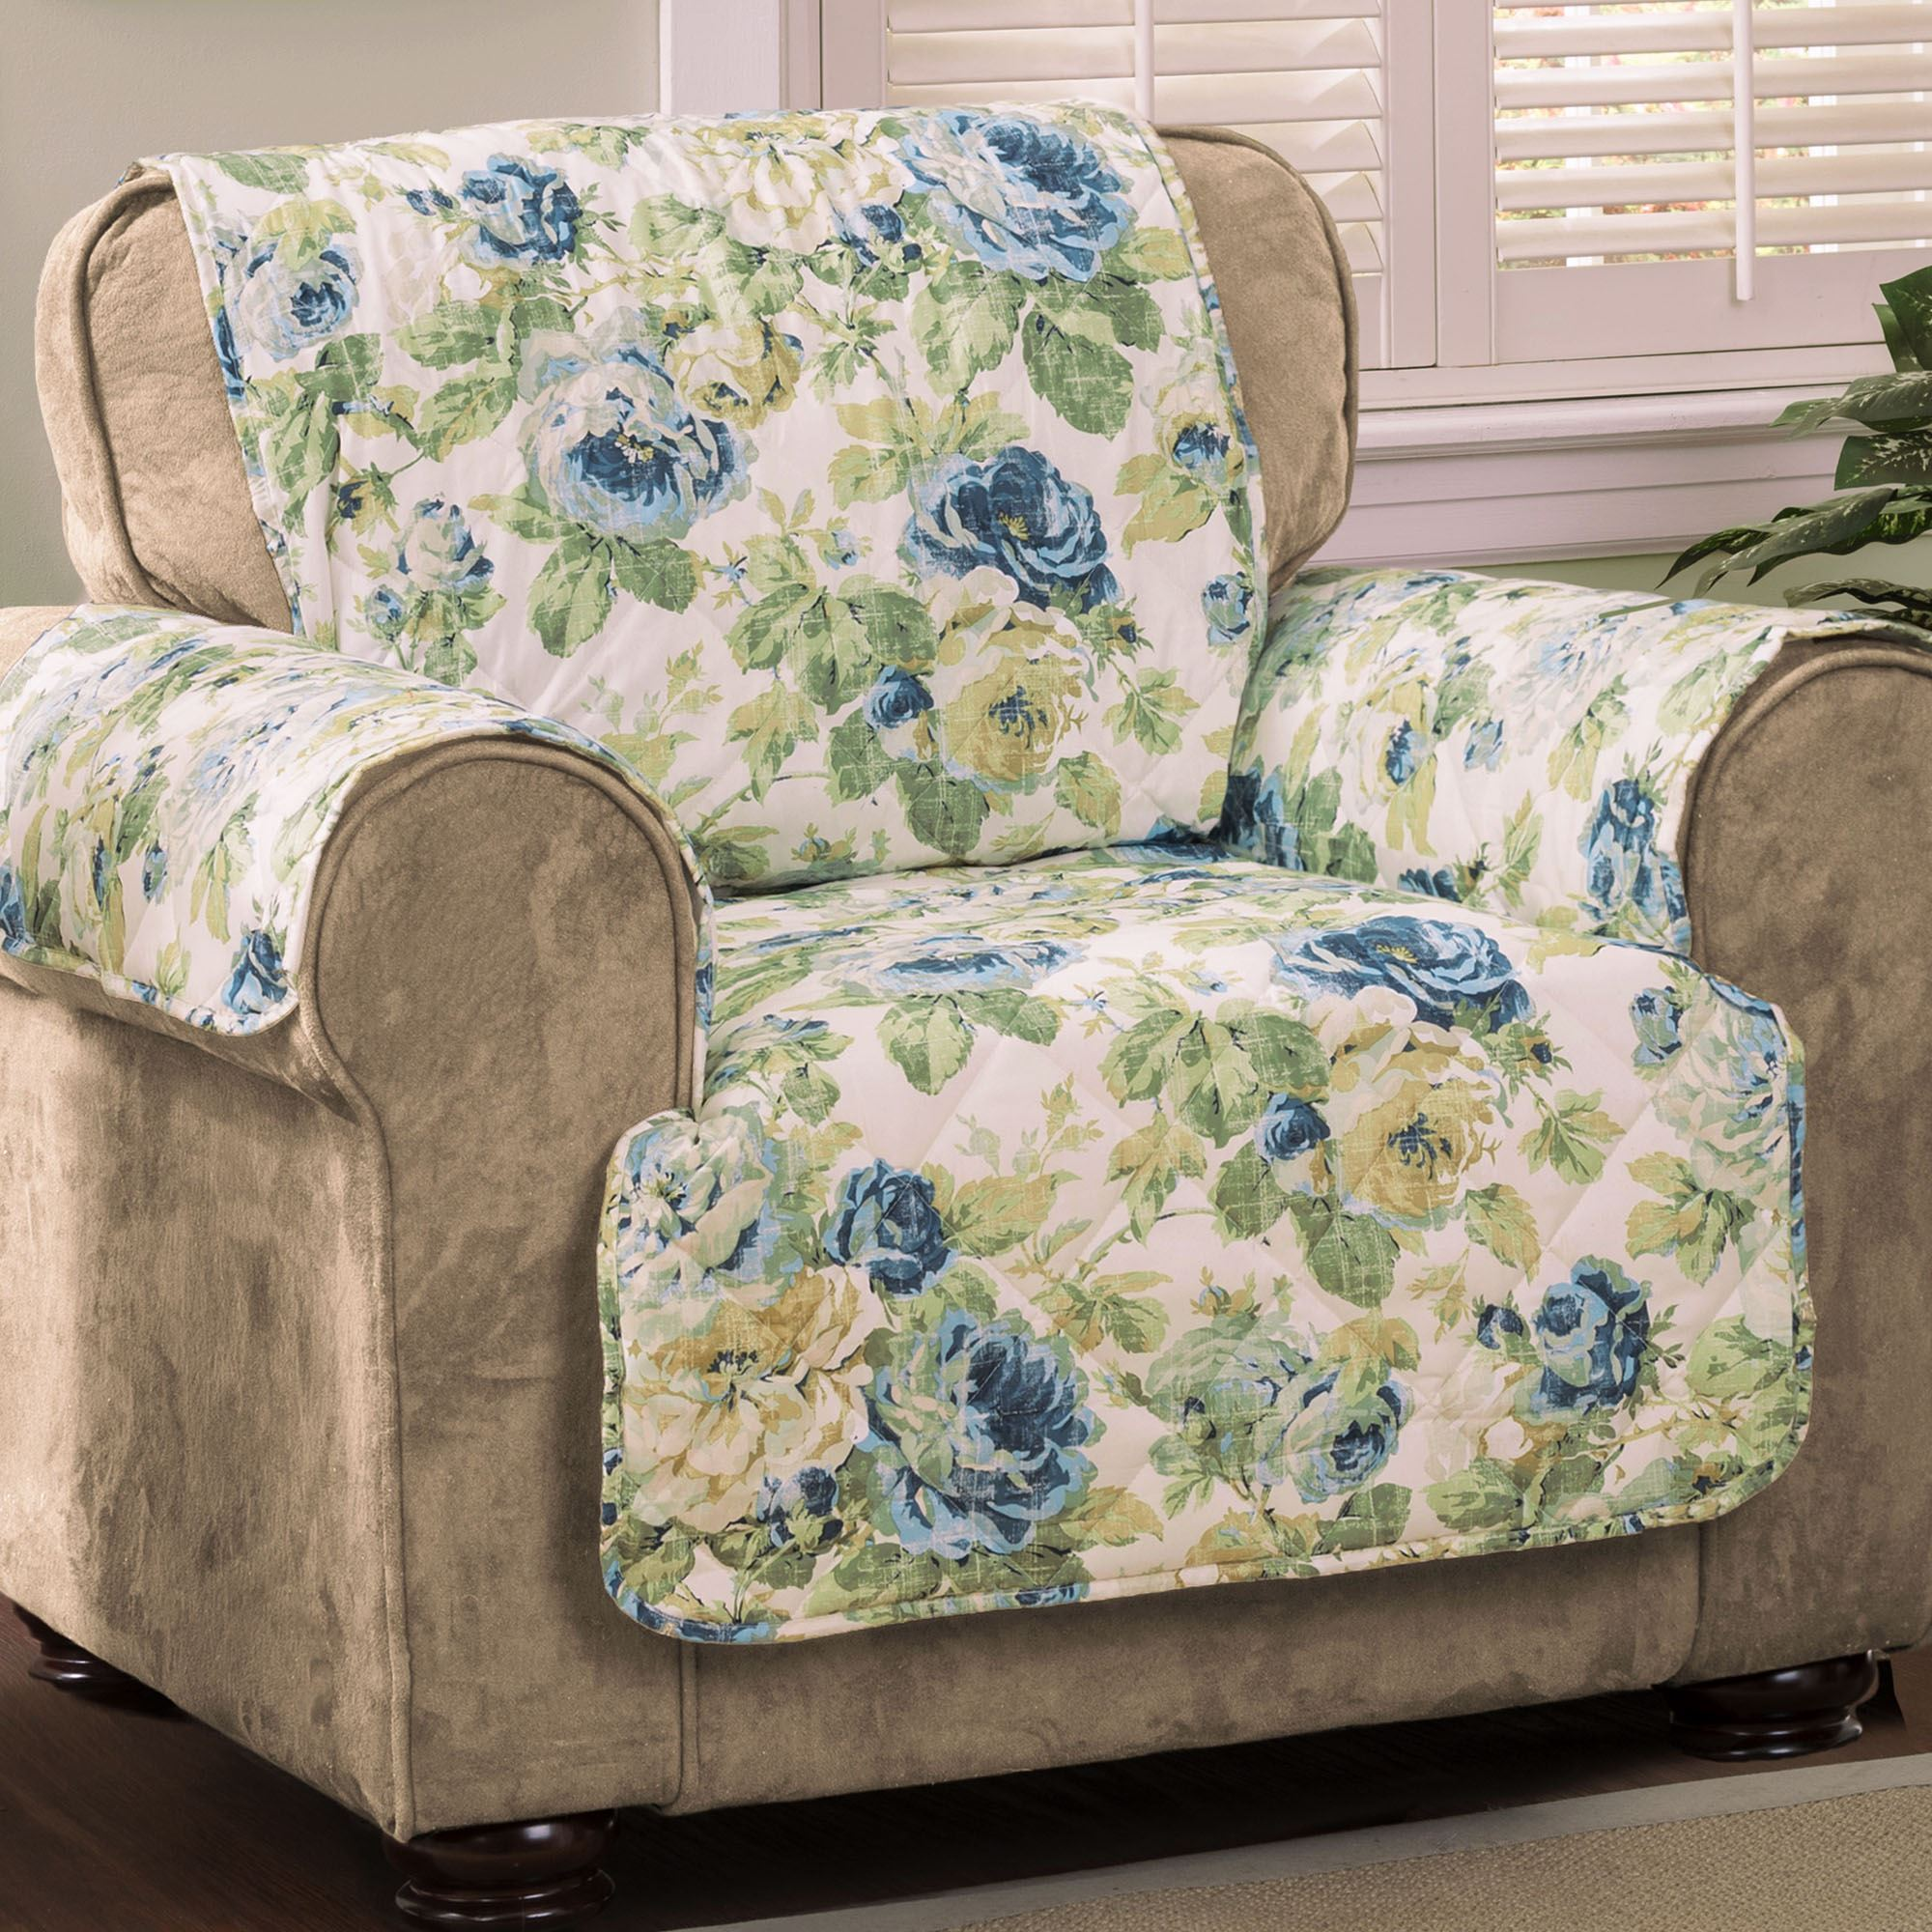 Quilted Lounge Chair Covers English Floral Sky Blue Quilted Furniture Protectors